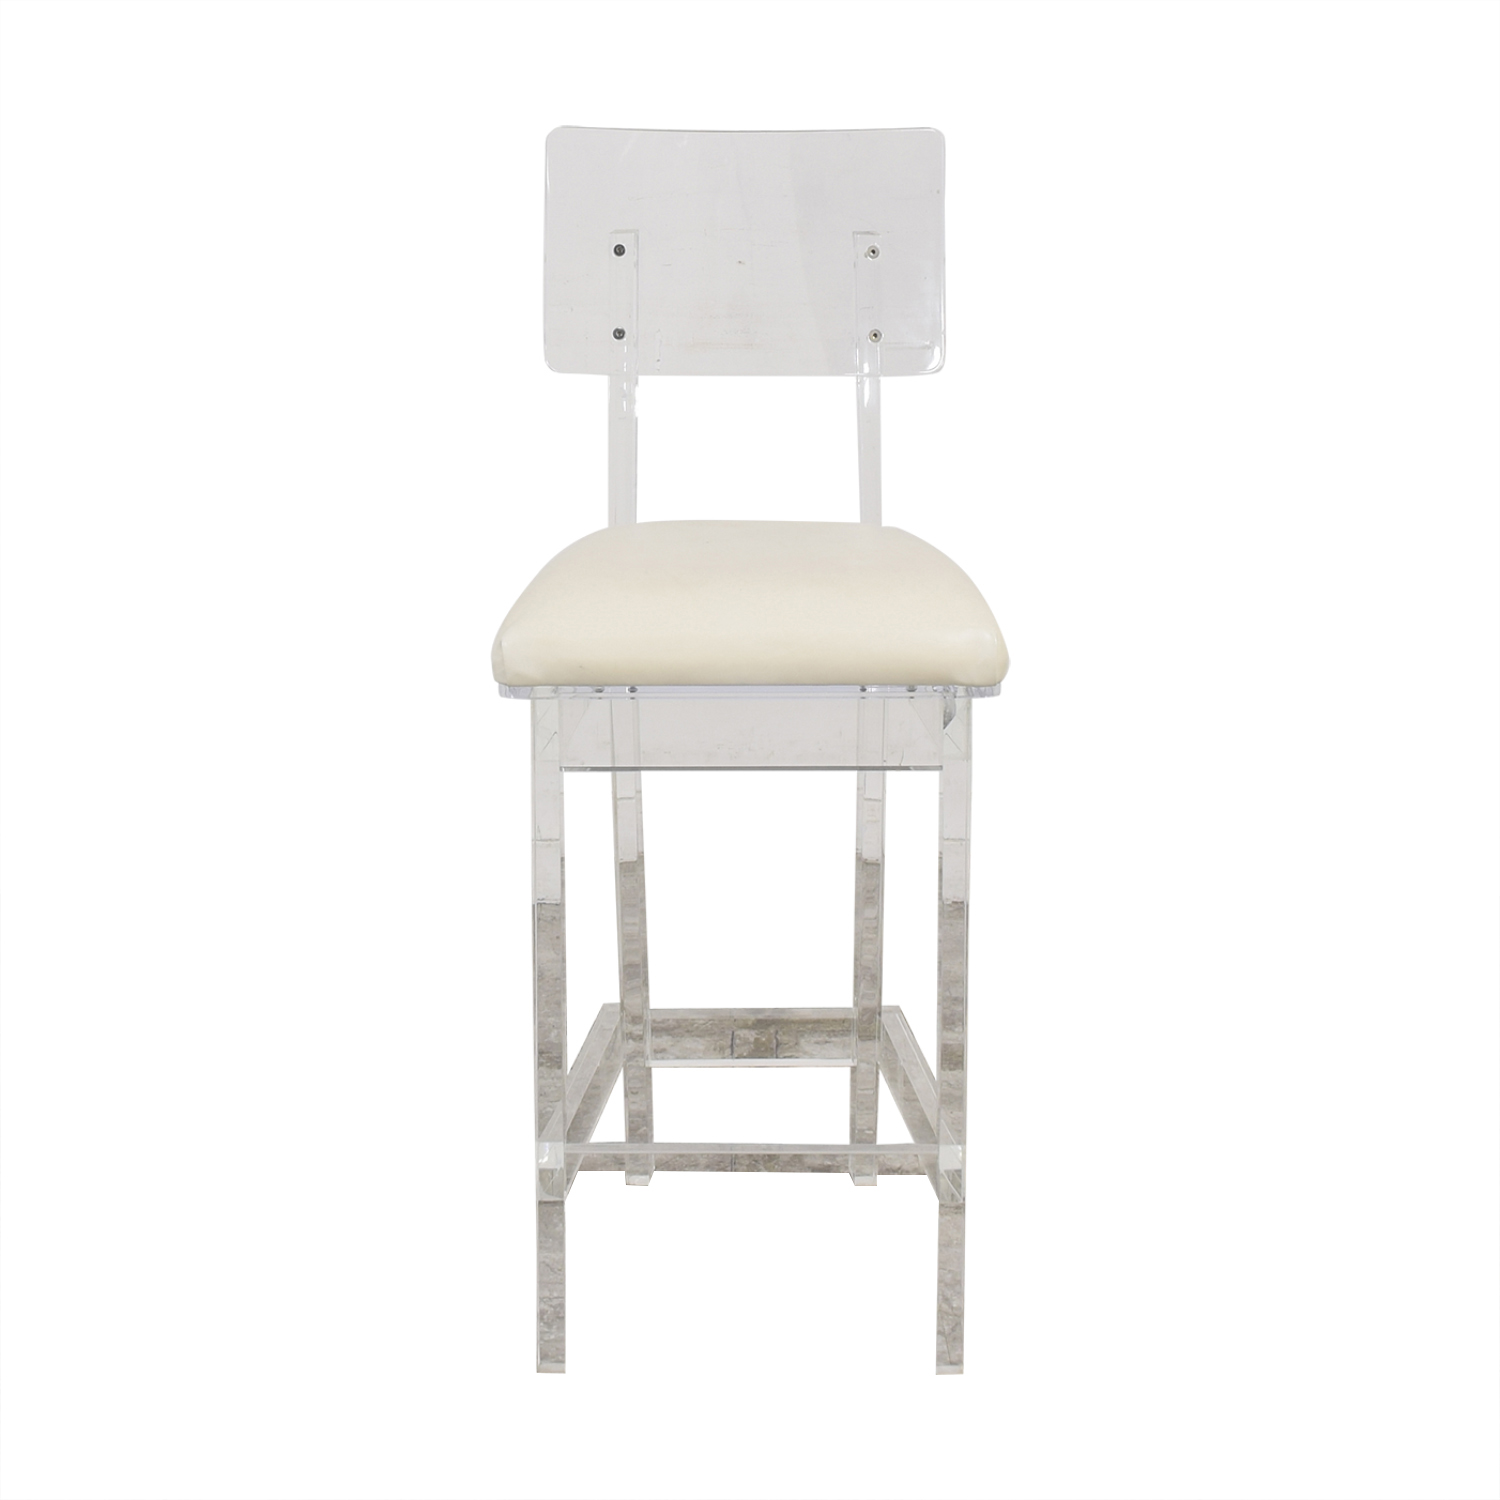 Plexi-Craft Plexi-Craft King George Bar Stool ma